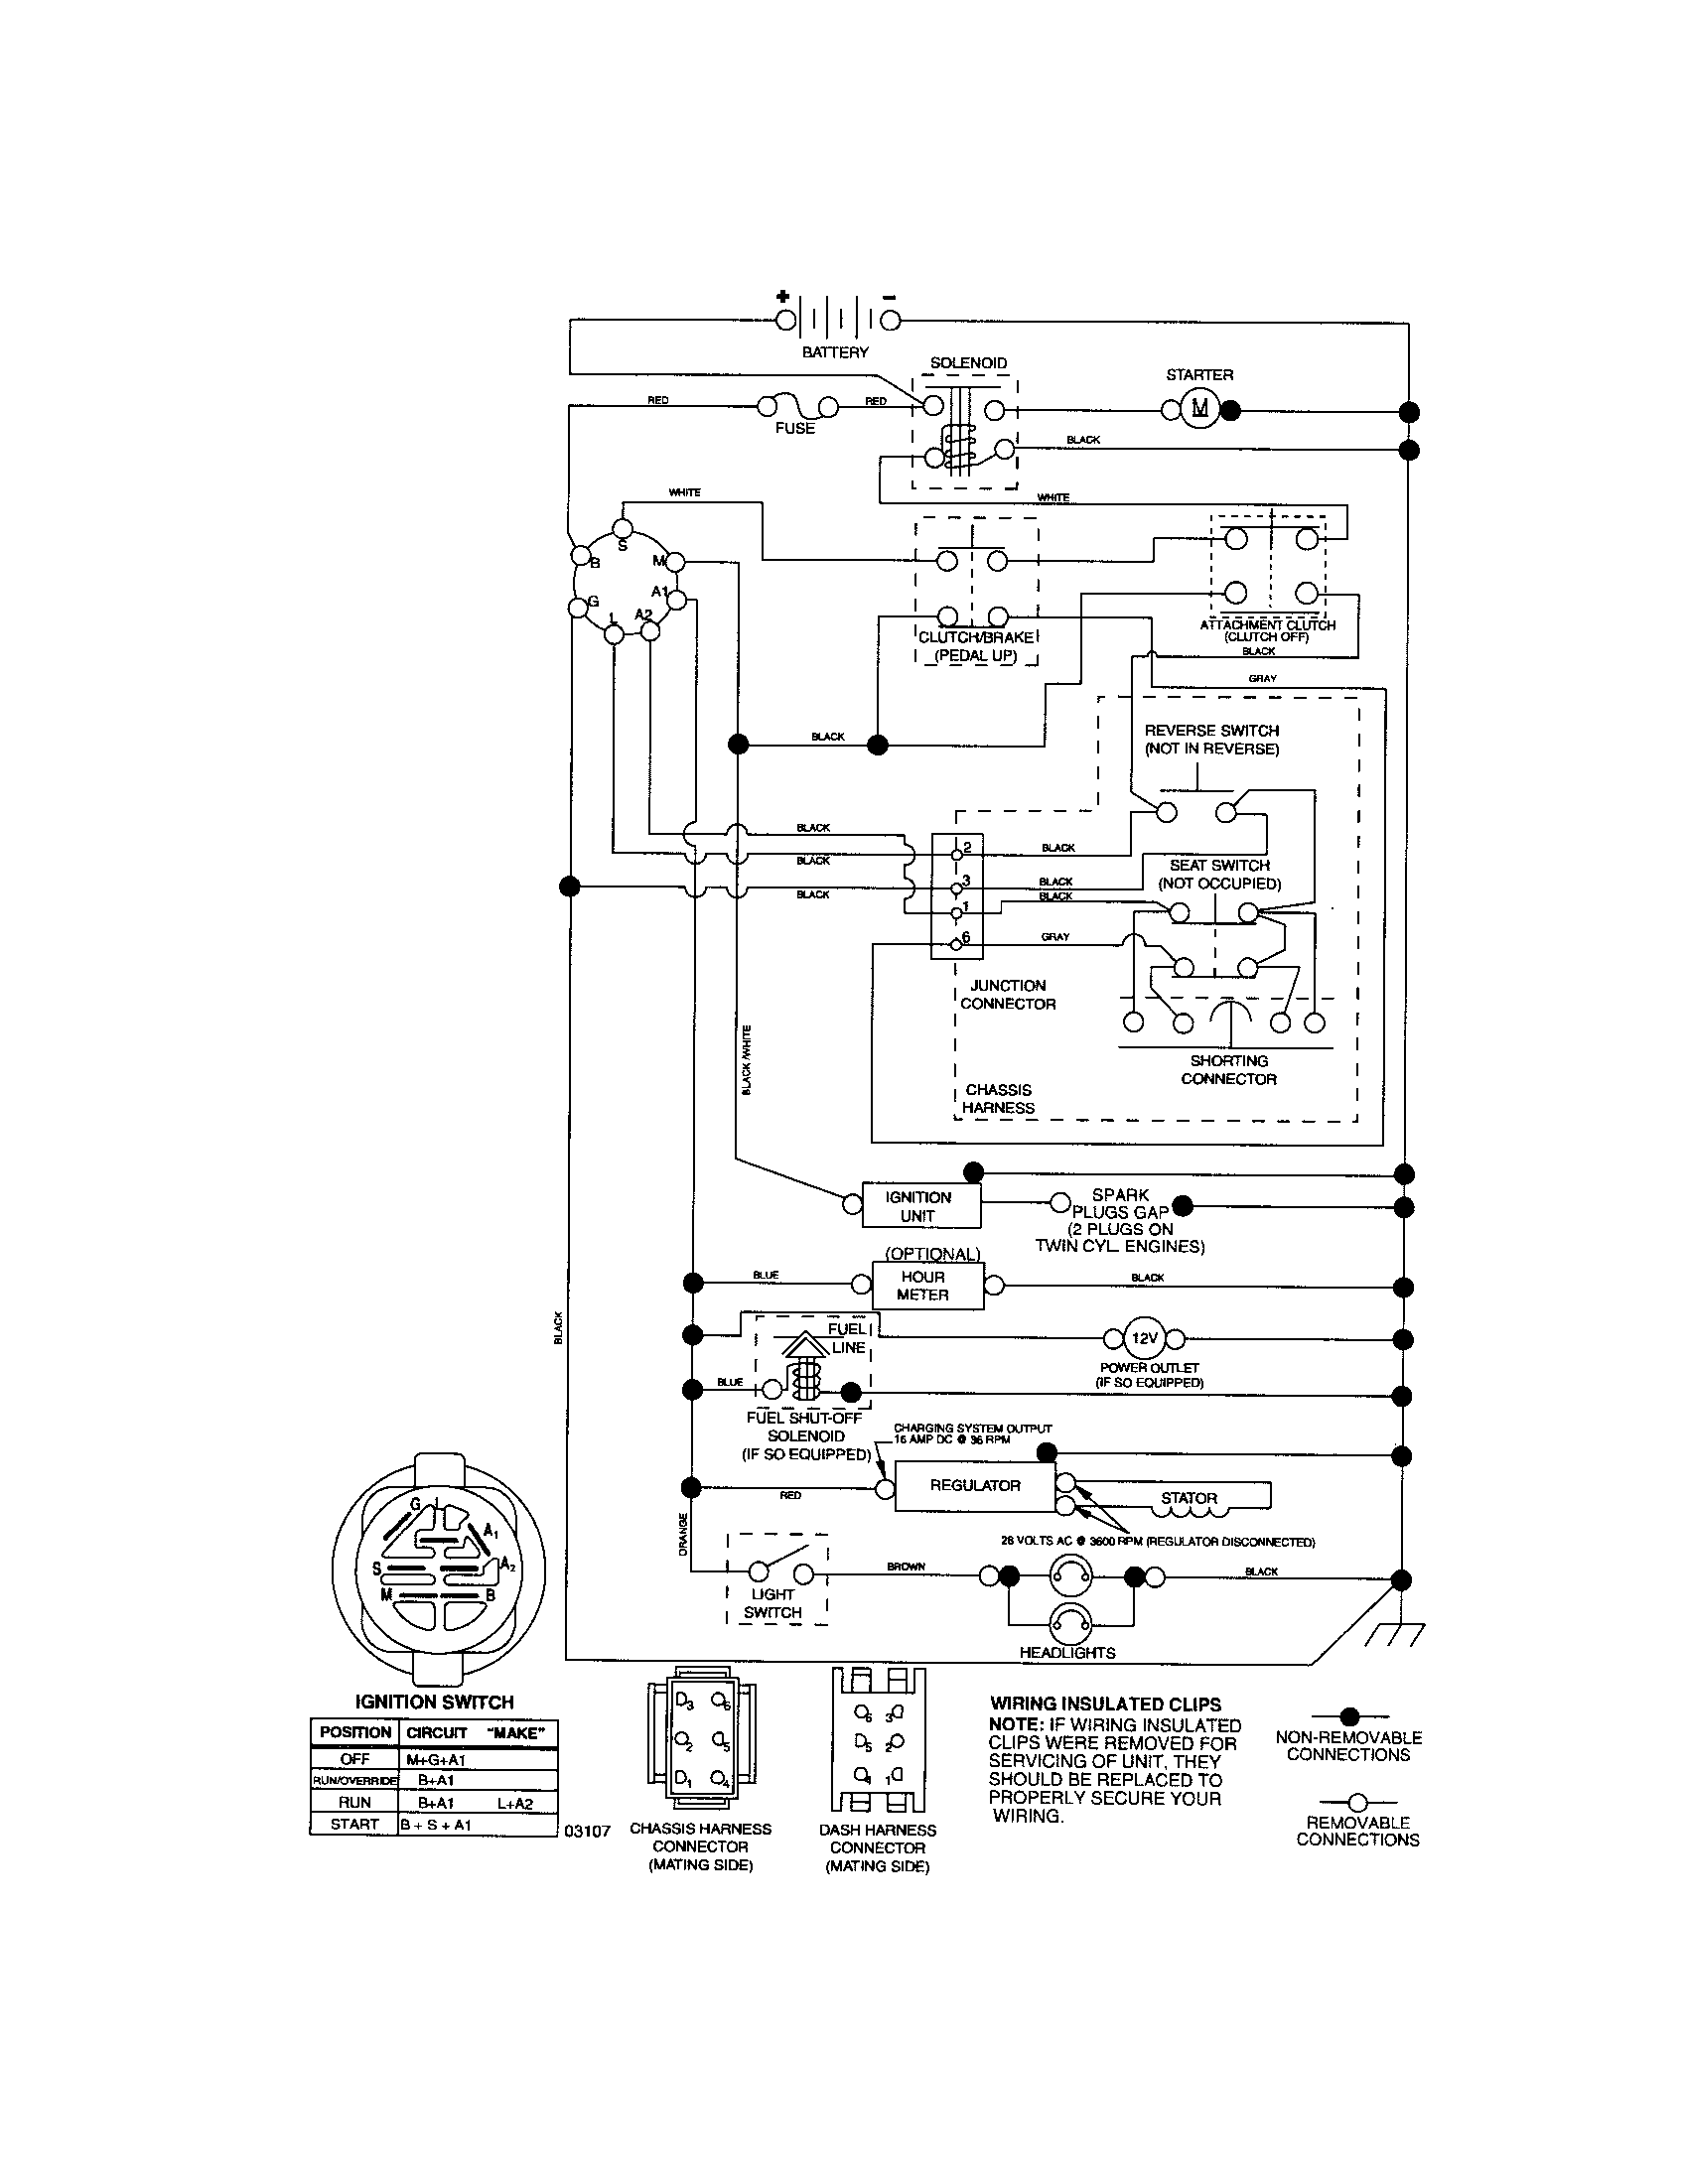 6af5f1447fd13c8443376822ddc1e105 craftsman riding mower electrical diagram wiring diagram Wright Stander Mower Wiring Diagram at edmiracle.co